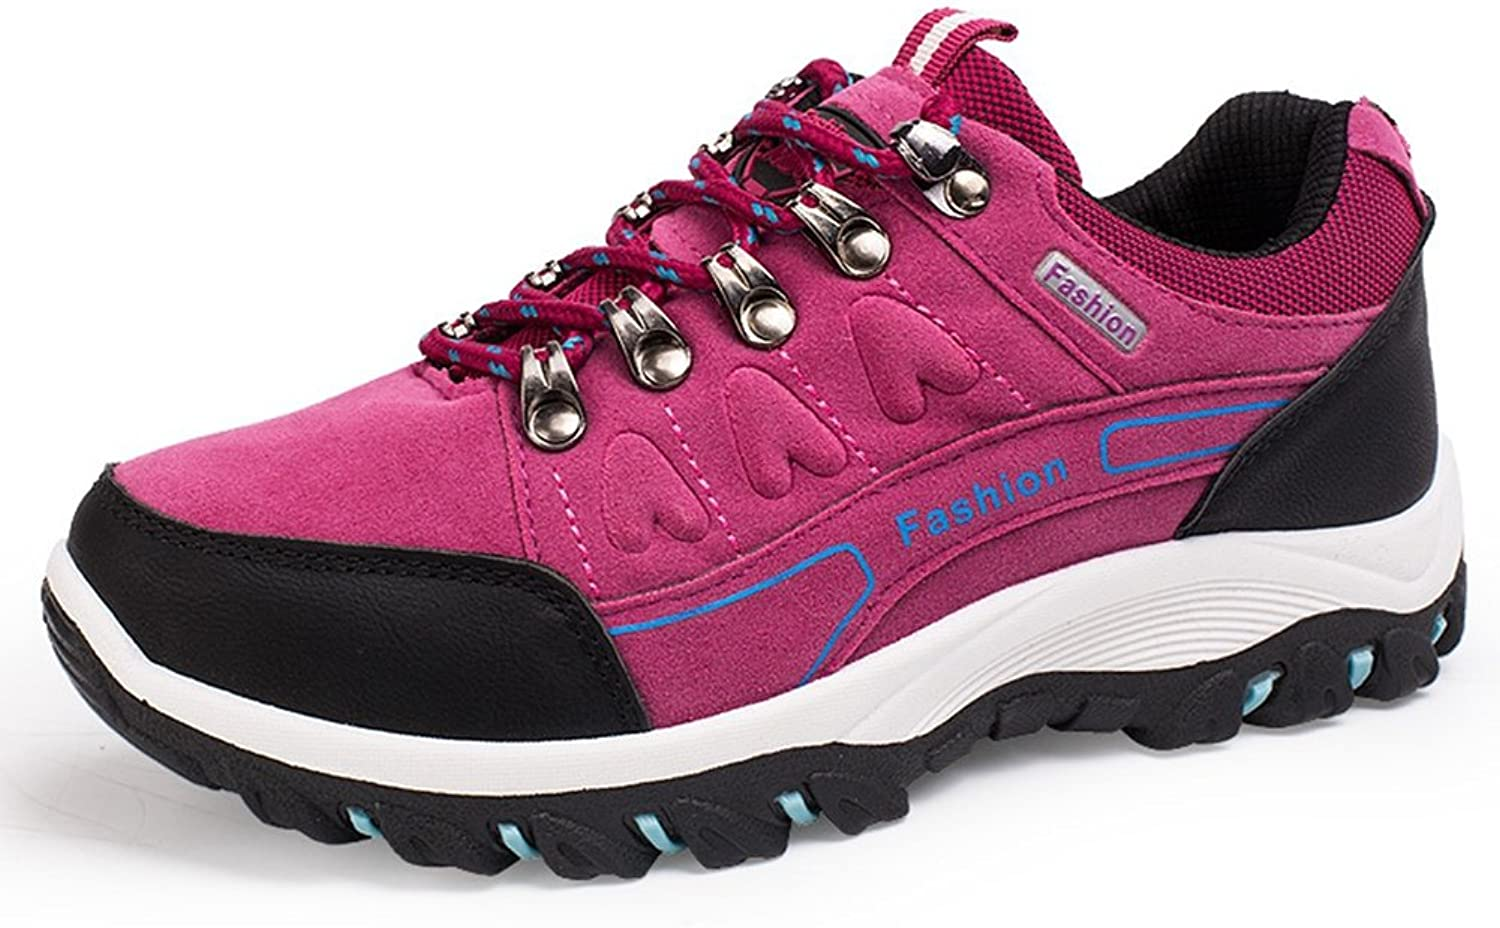 CYBLING Outdoor Casual Athletic Mountaineering Walking Running Hiking shoes for Women